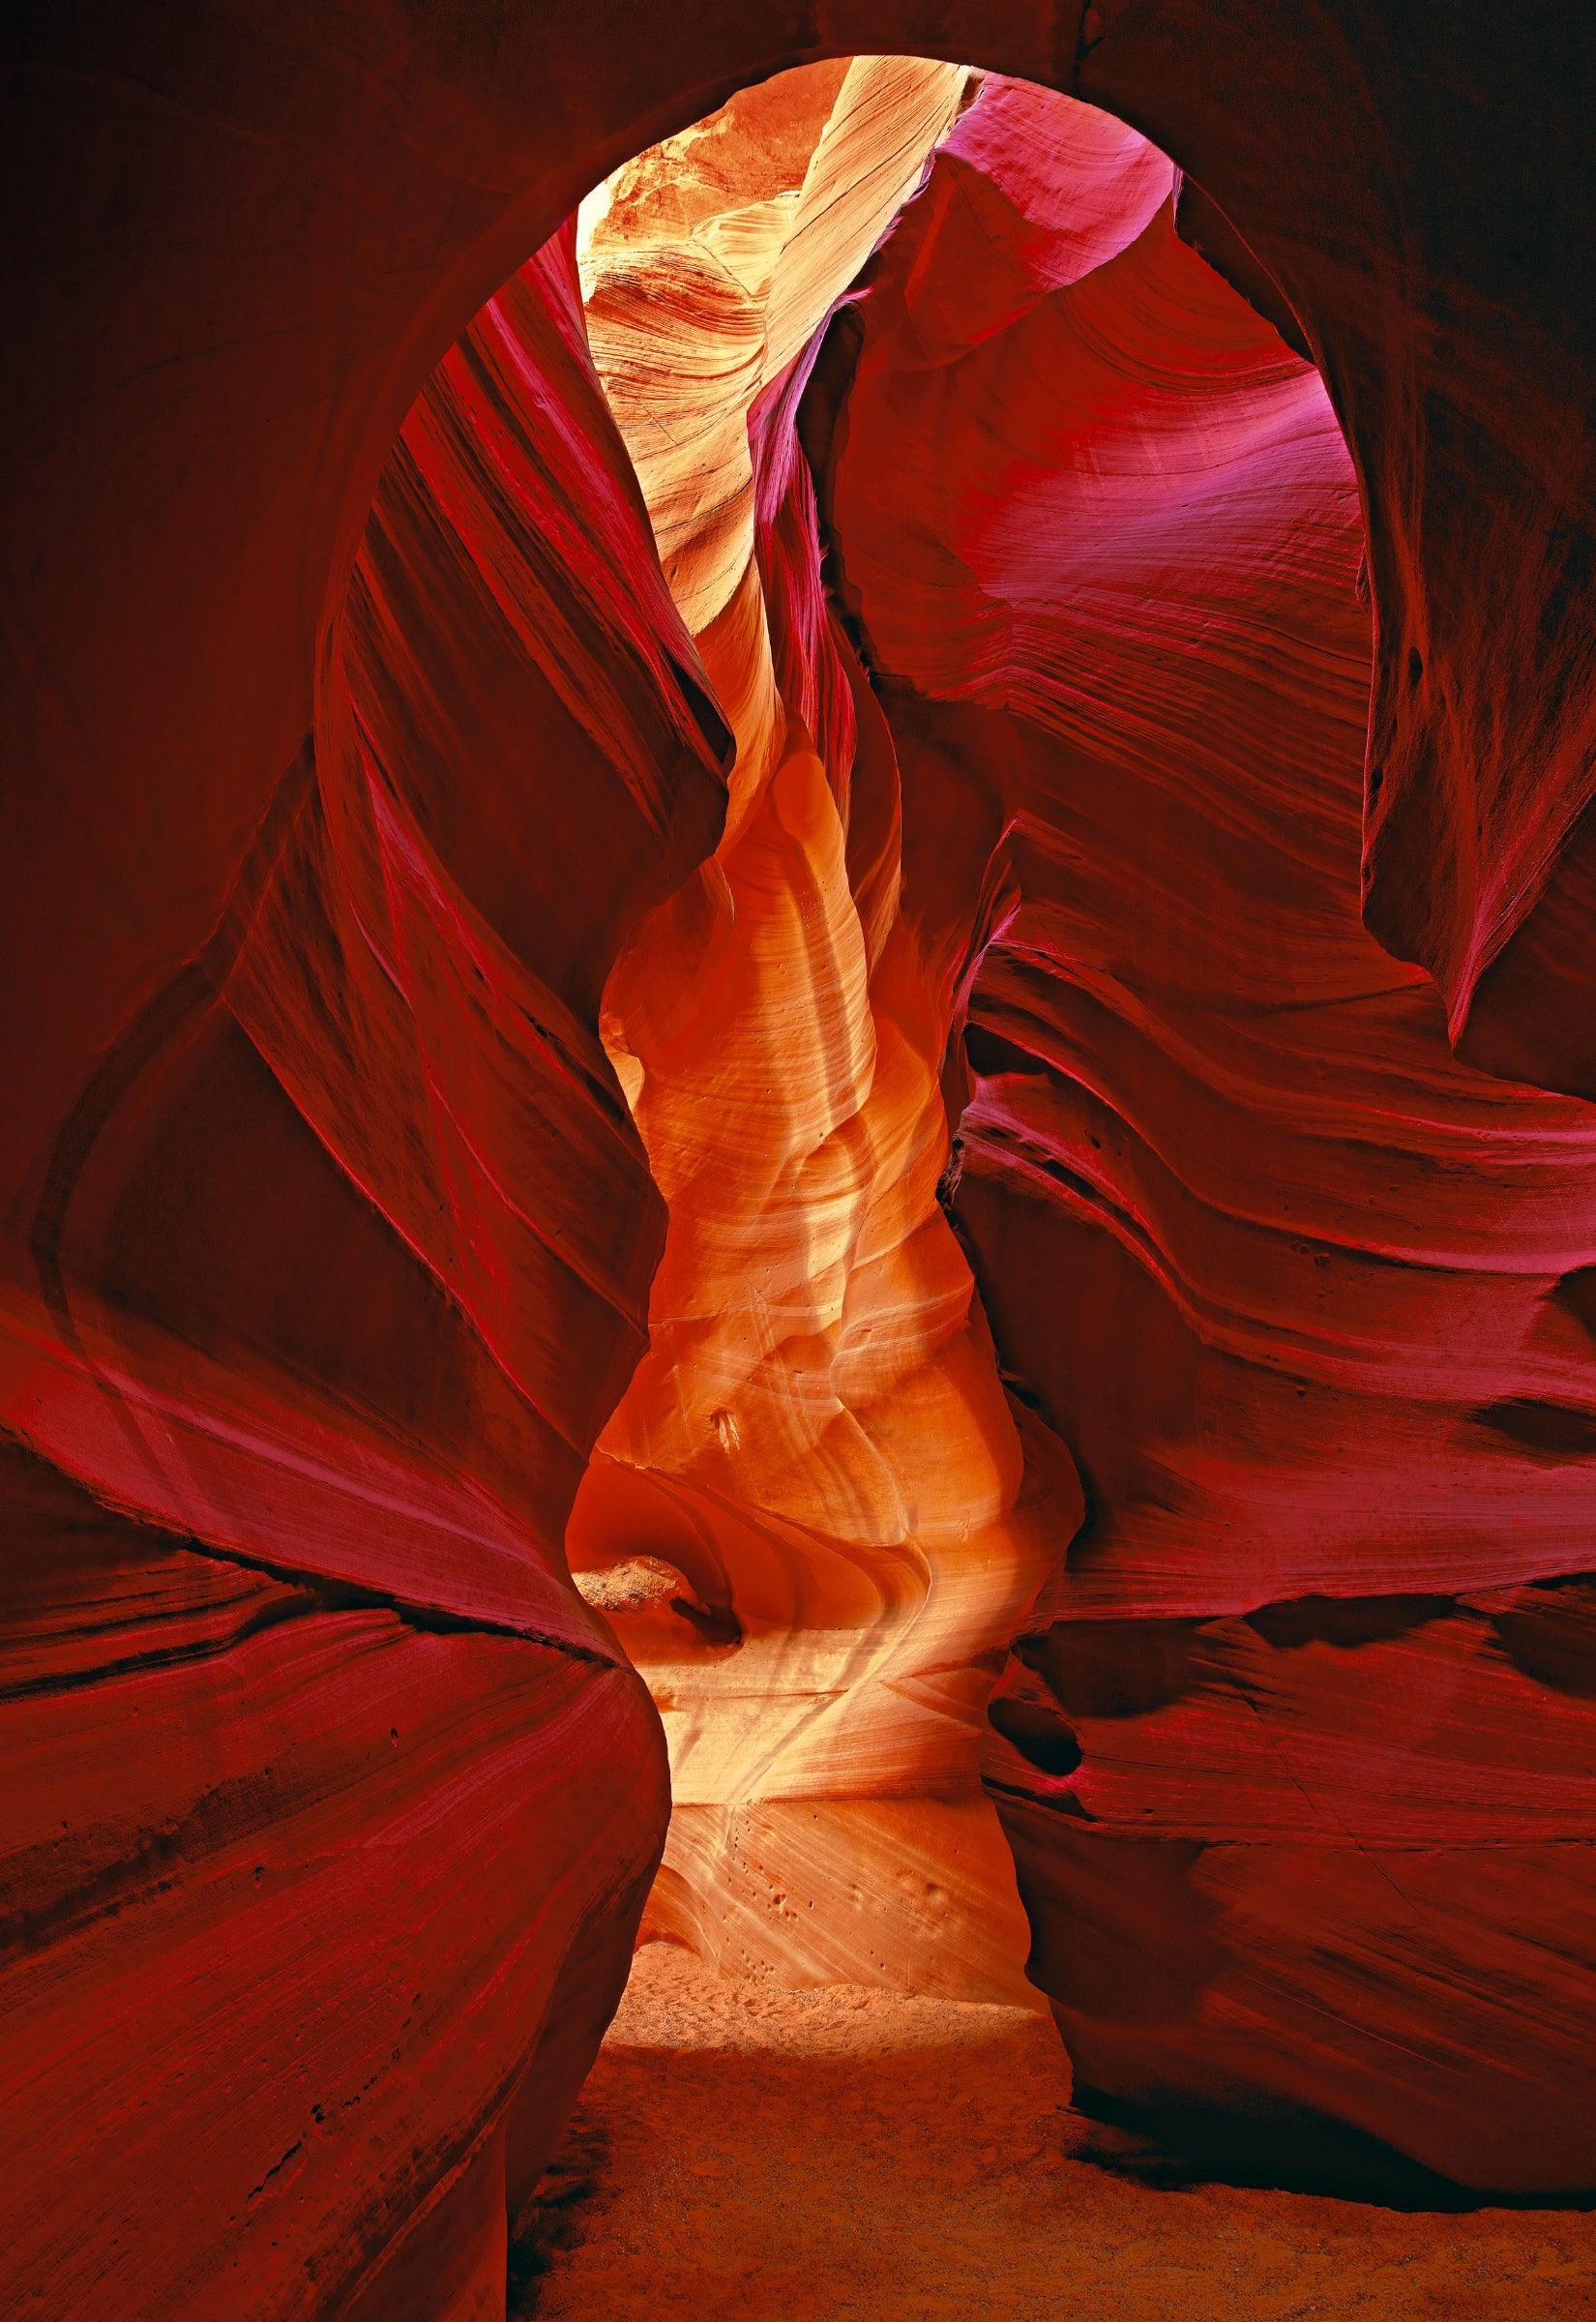 Sand trail leading through red and orange sandstone walls of the slot canyons in Antelope Canyon Arizona